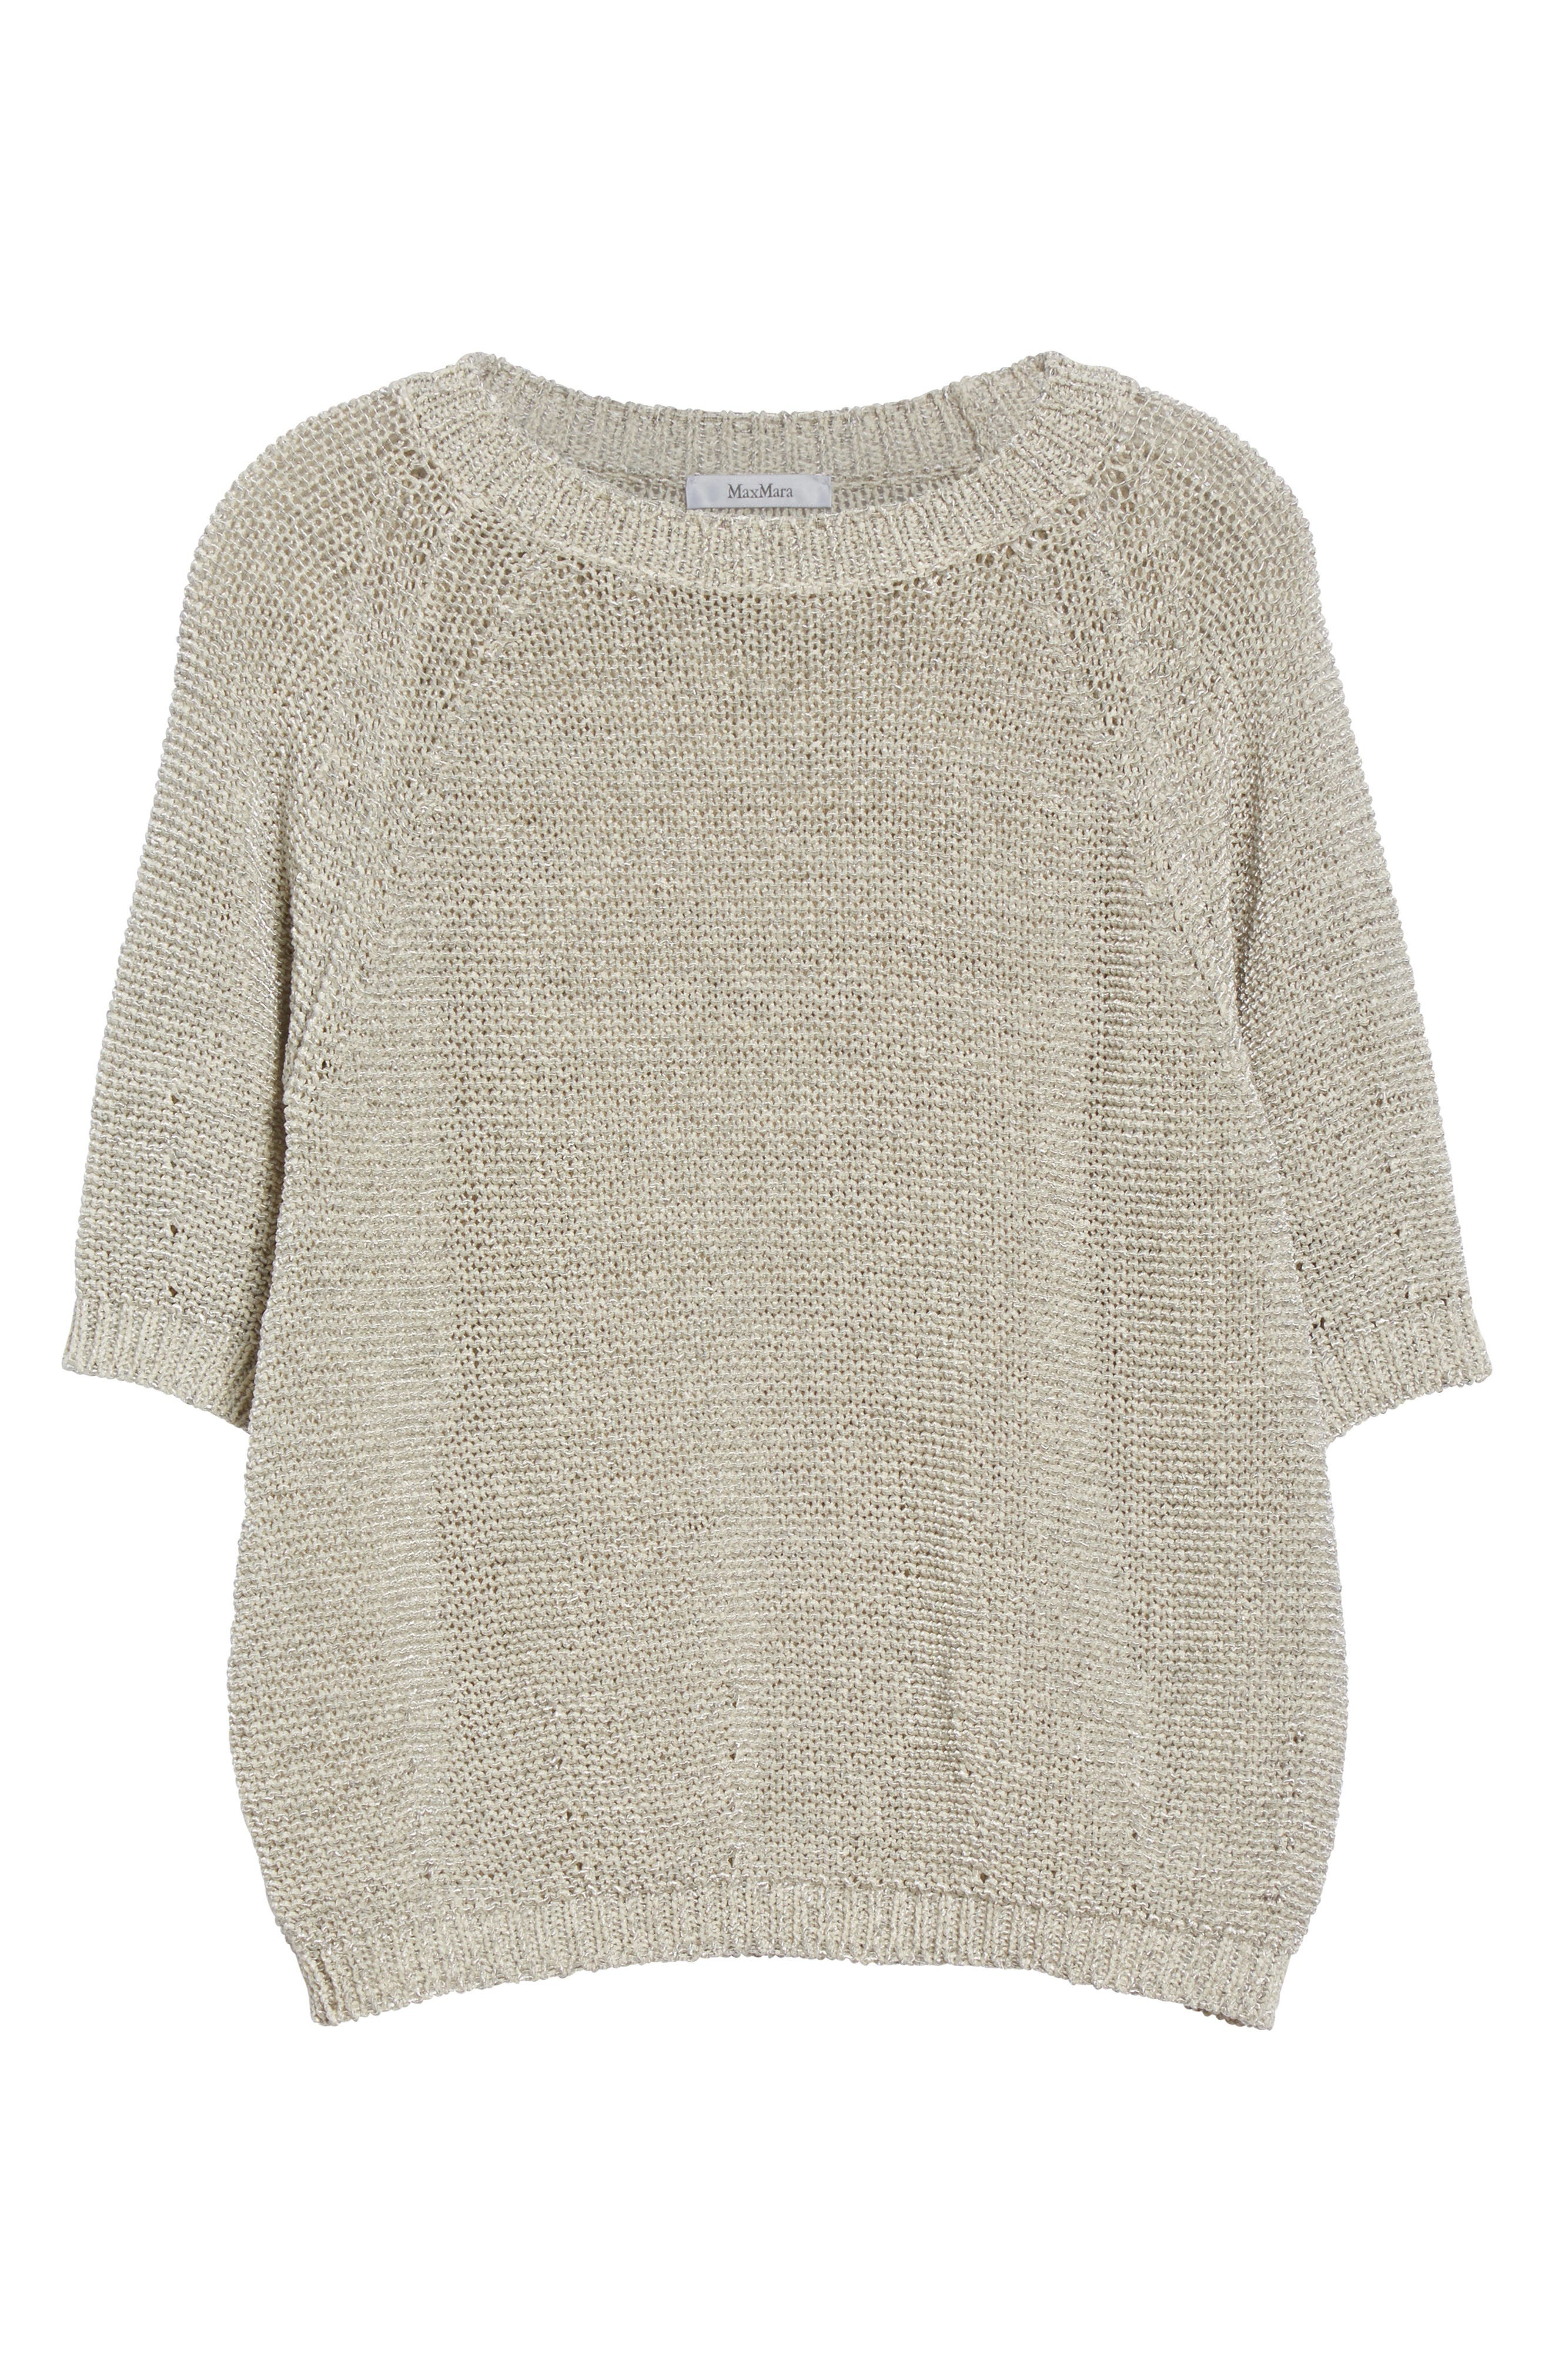 Cotton Blend Sweater,                             Alternate thumbnail 4, color,                             White